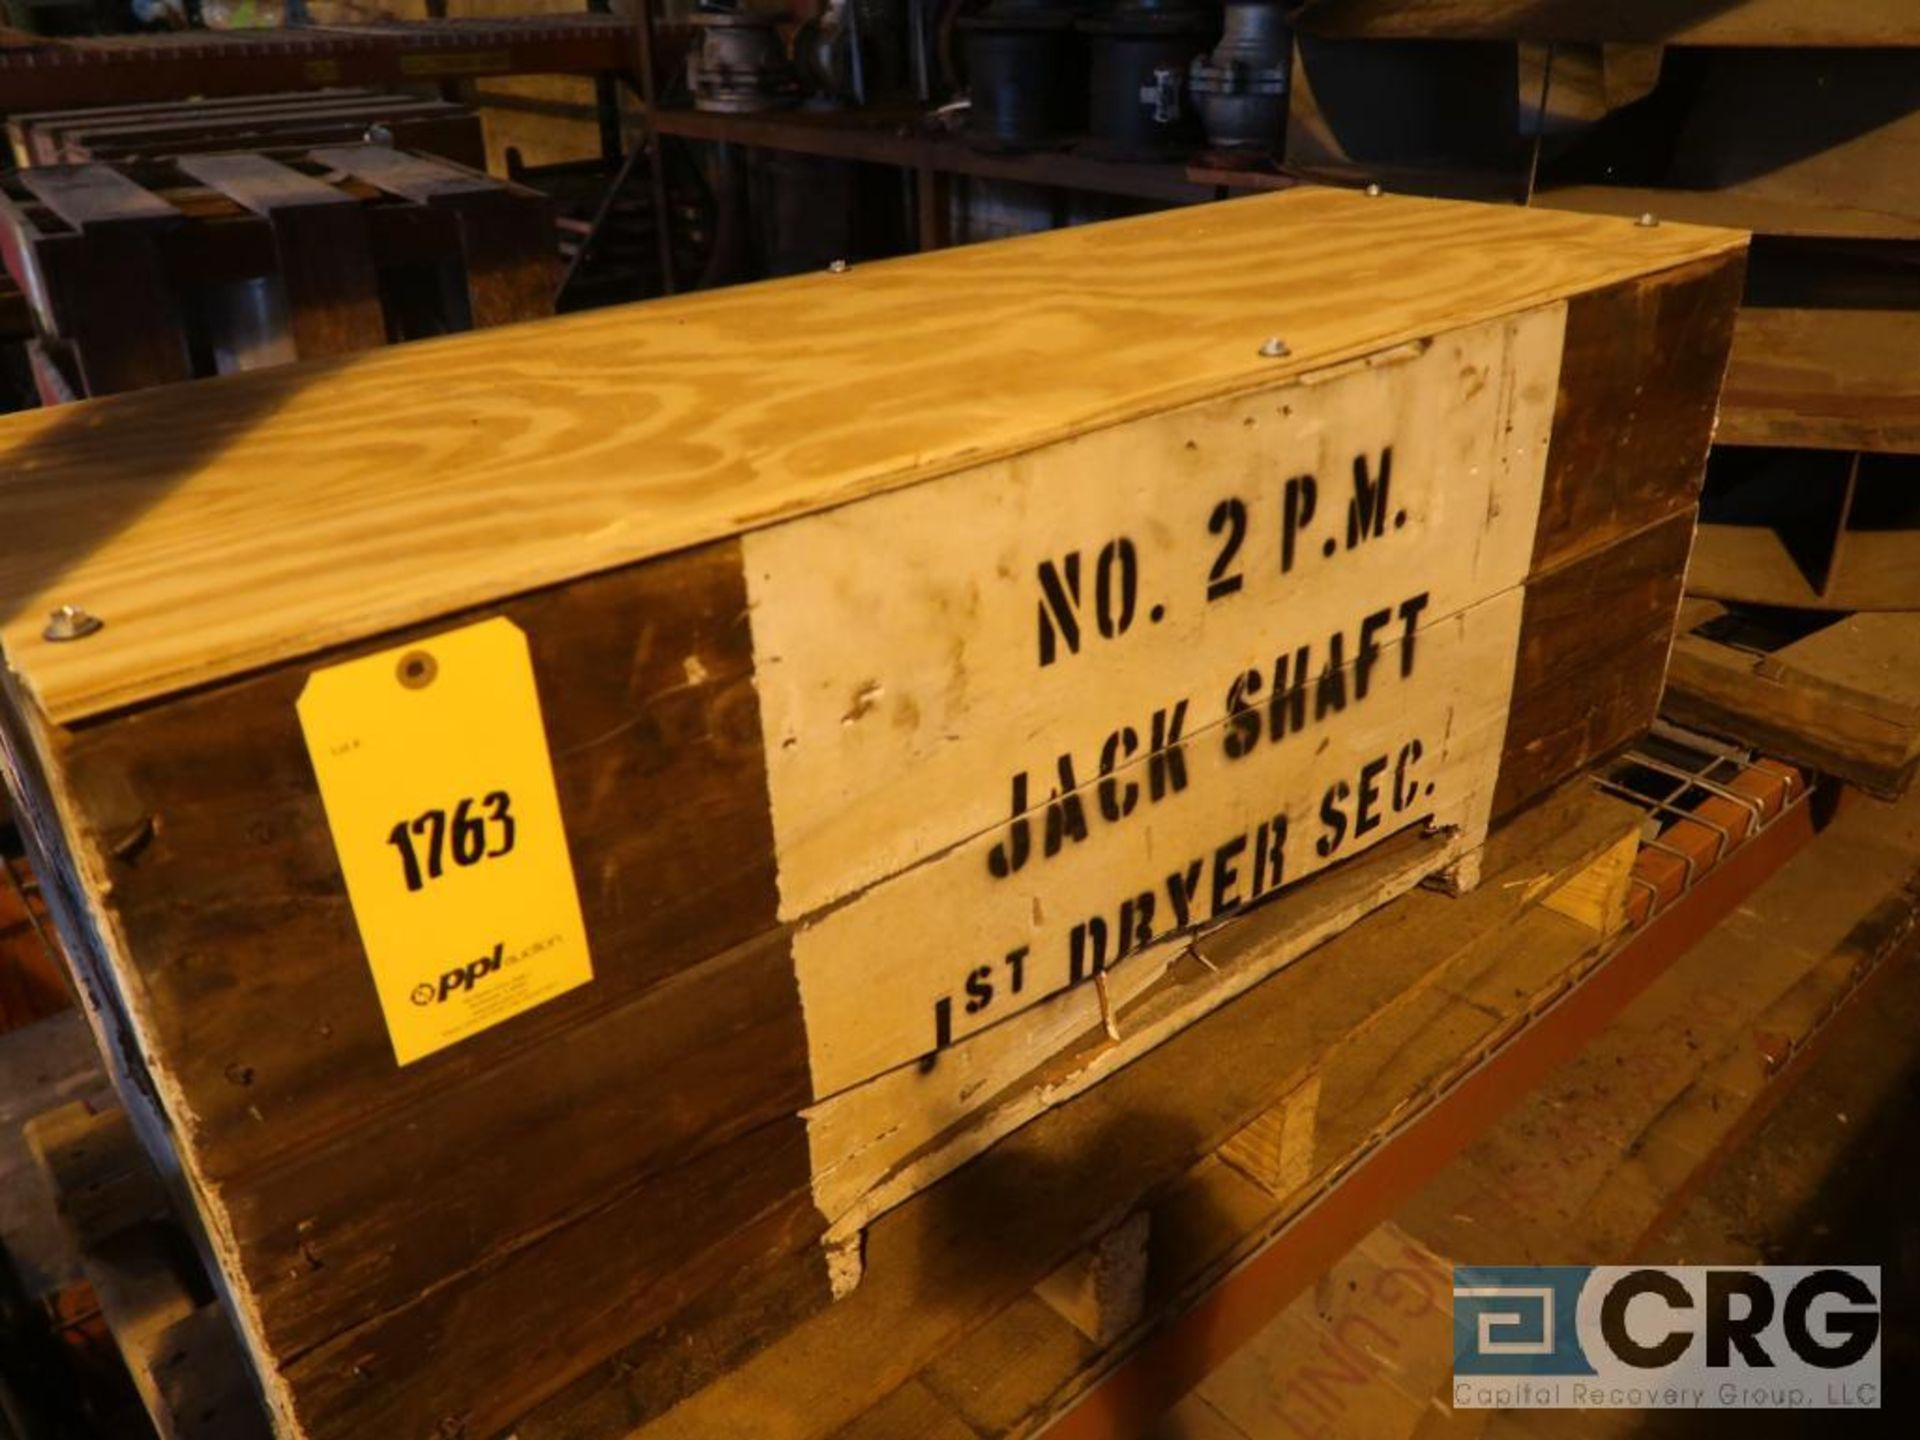 Lot of assorted parts including expansion joint, valves, fan blade, and rotors (Next Bay Cage Area) - Image 11 of 15